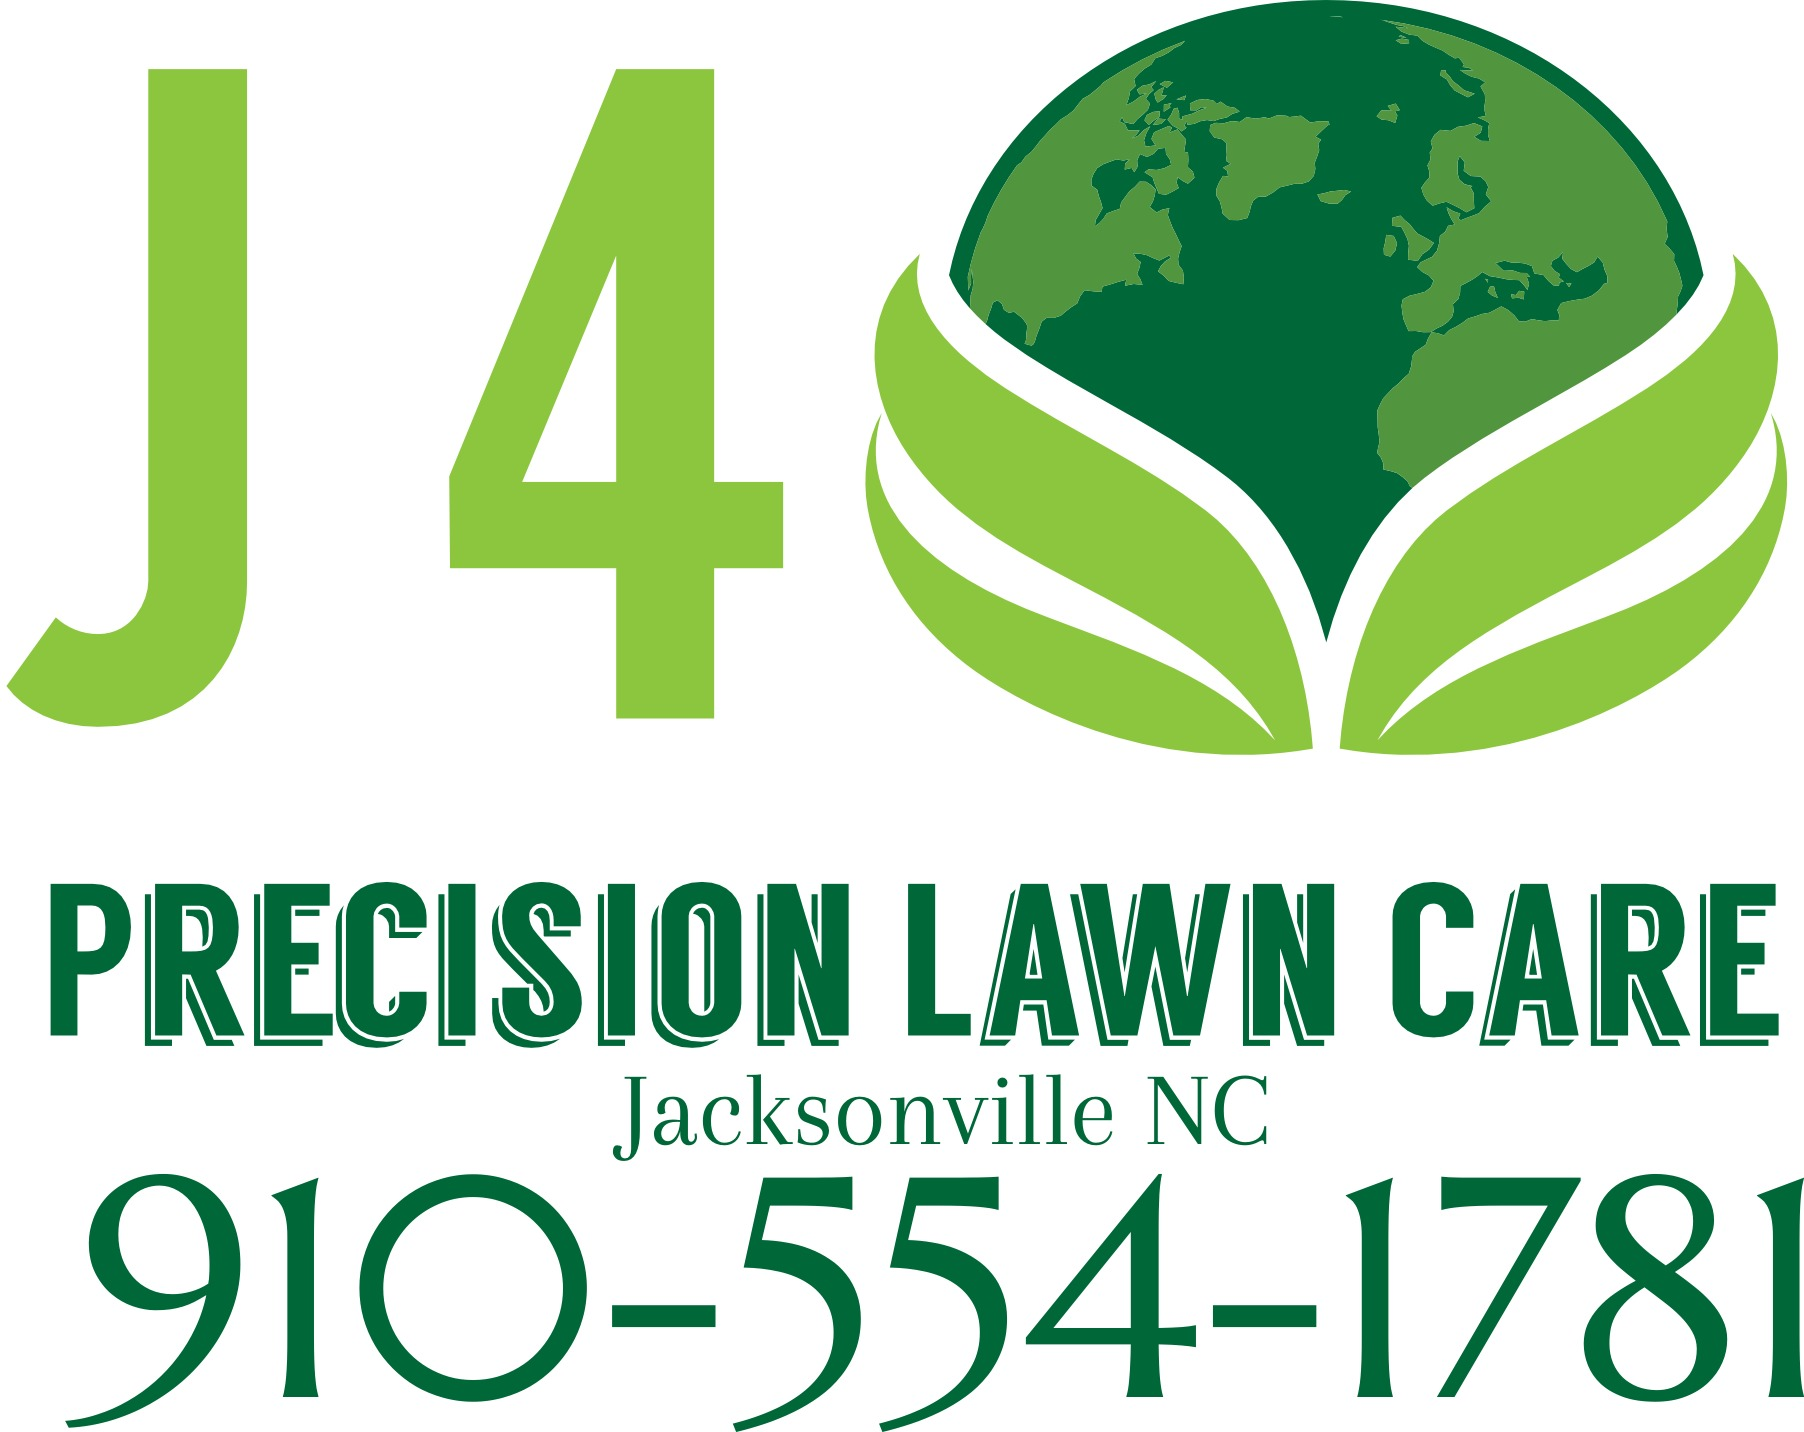 1804x1432 Lawn Care, Landscape Design, Yard Maintenance Jacksonville, Nc